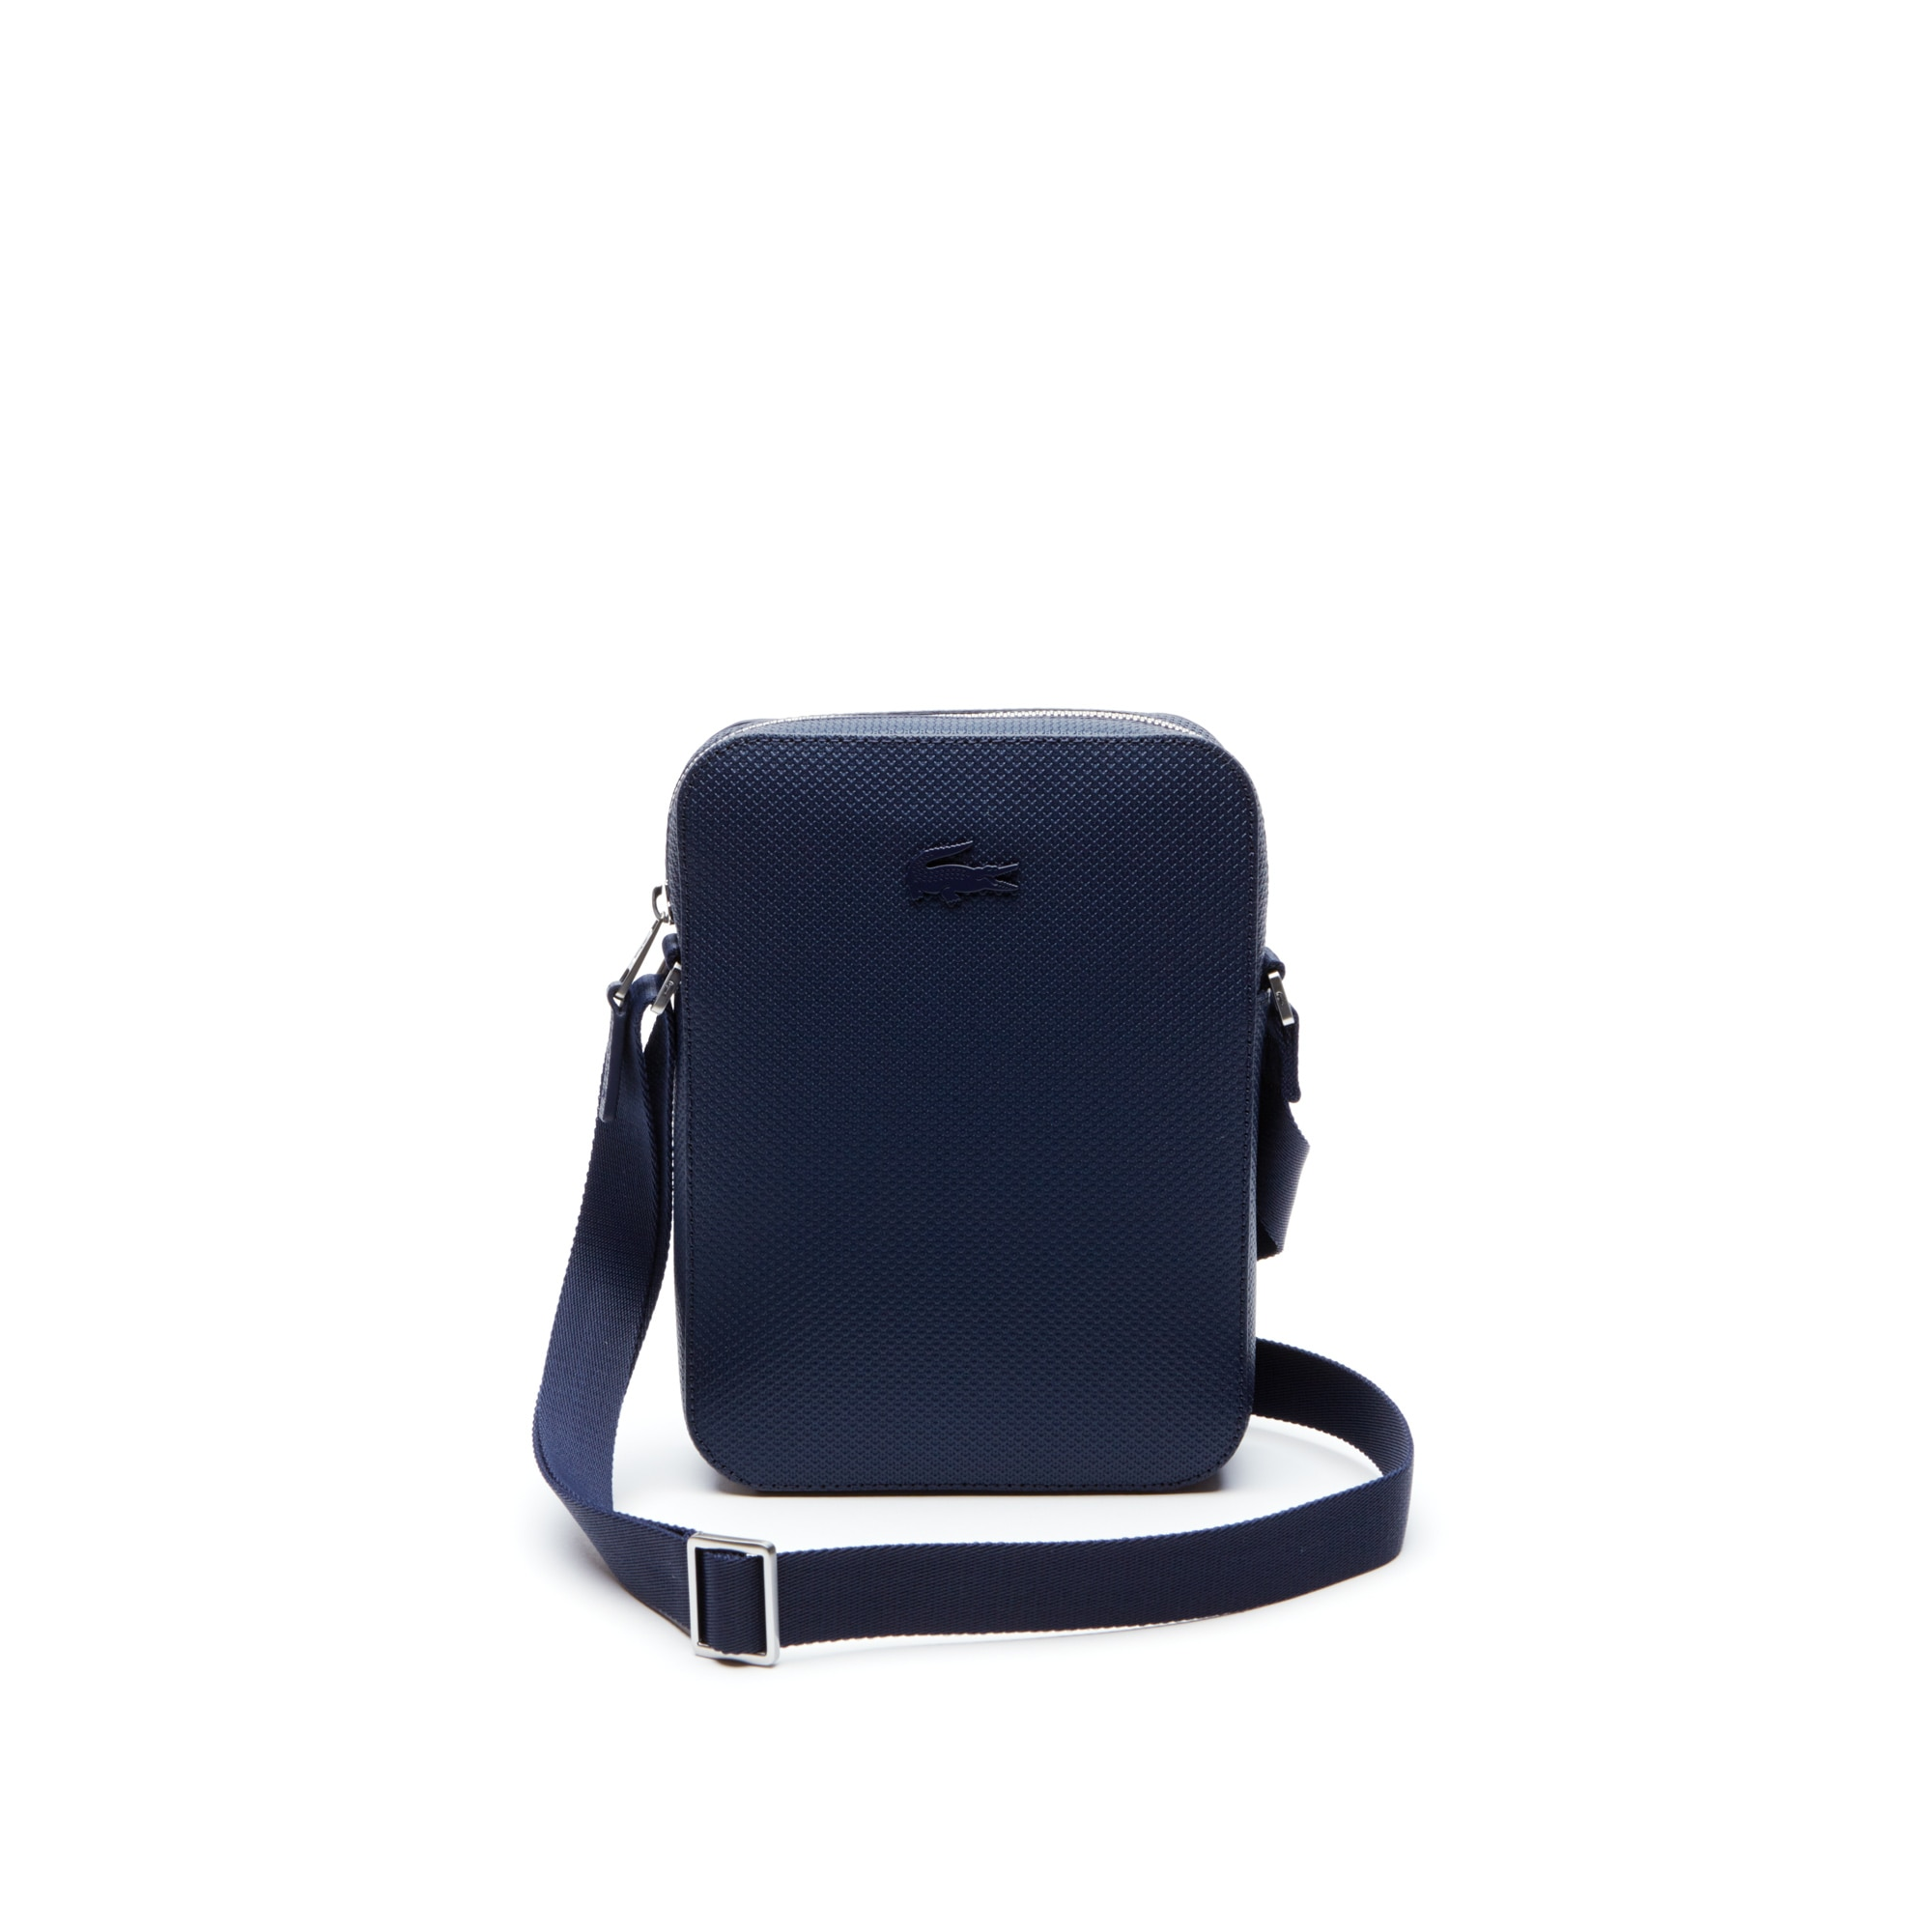 788a4fa76 Men's Chantaco Vertical Matte Piqué Leather Bag | LACOSTE